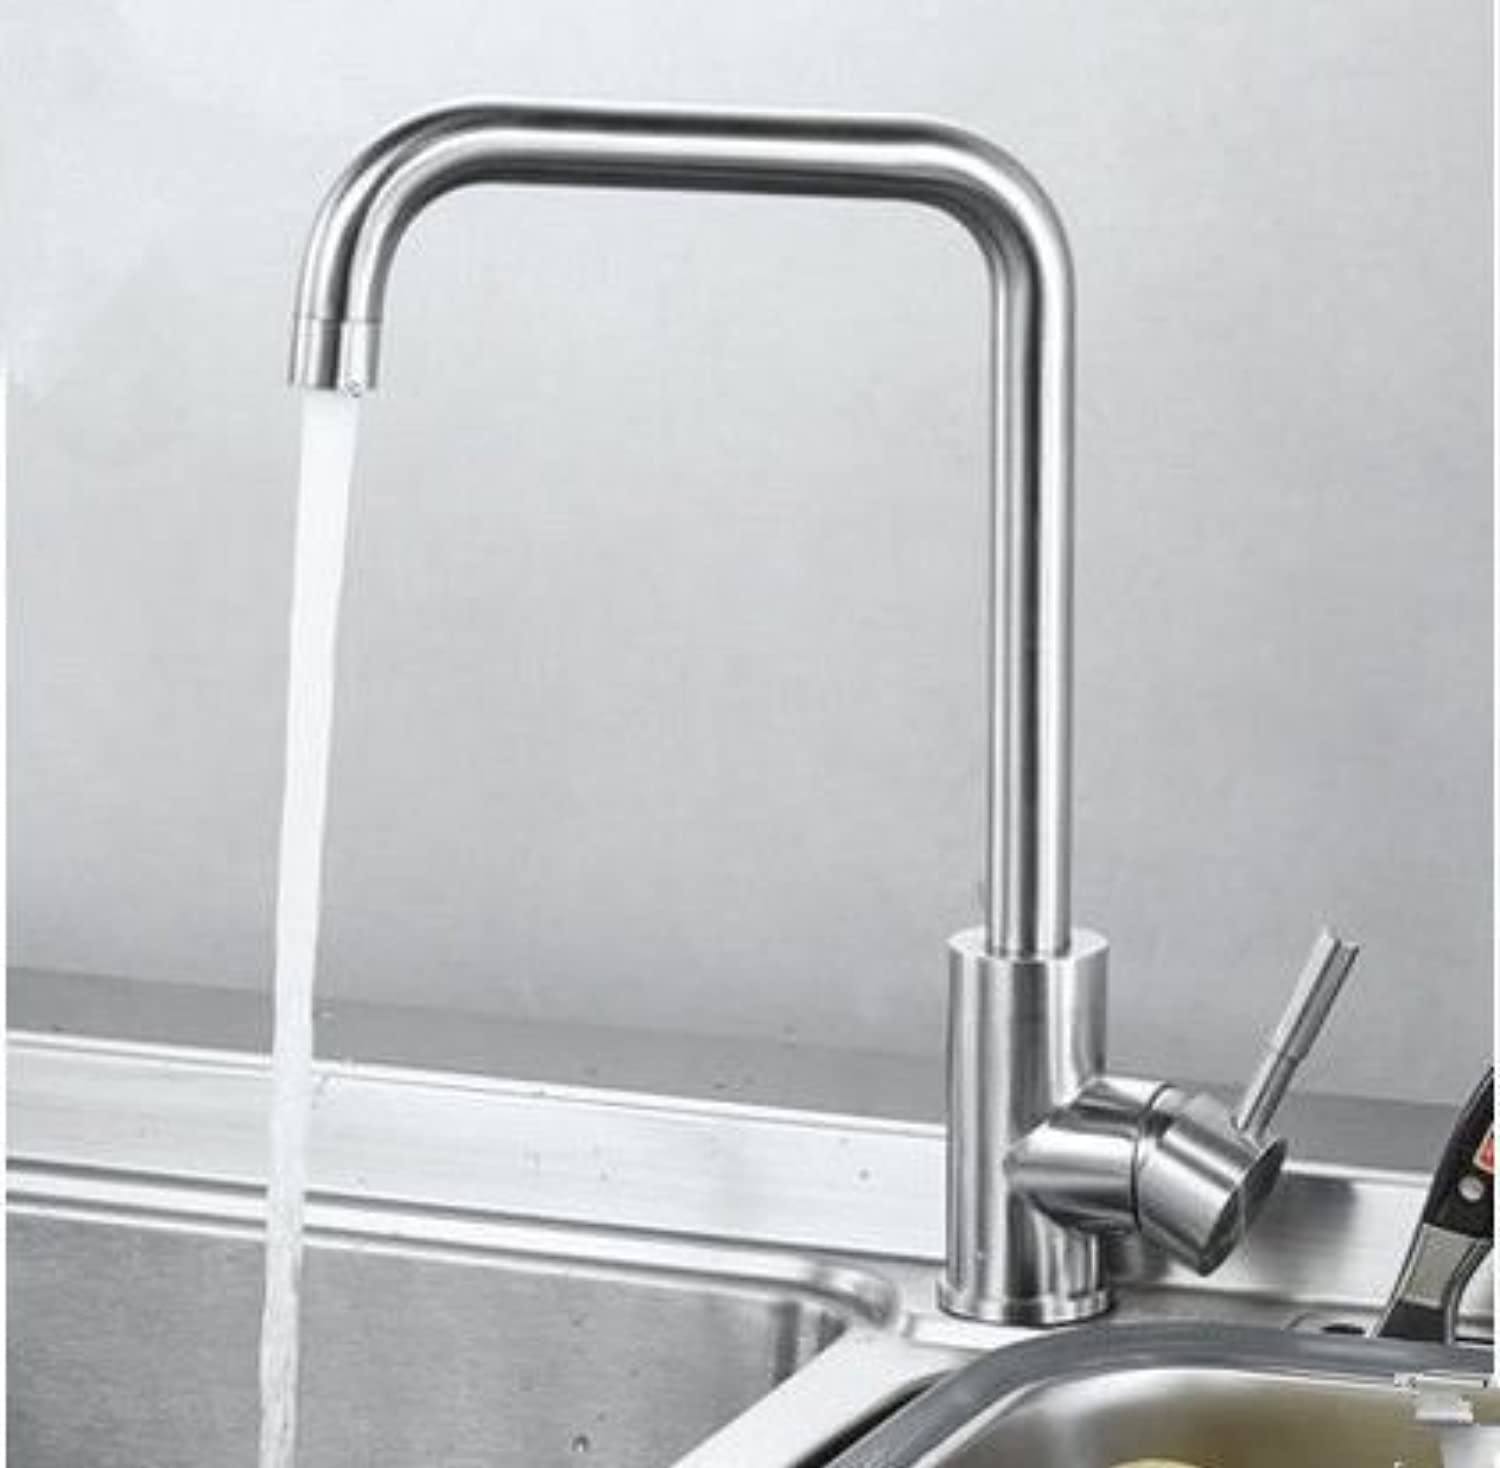 Commercial Single Lever Pull Down Kitchen Sink Faucet Brass Constructed Polished 304 Stainless Steel Kitchen Hot and Cold Faucet Sink Sink Sink Sink Heating and Cooling Faucet